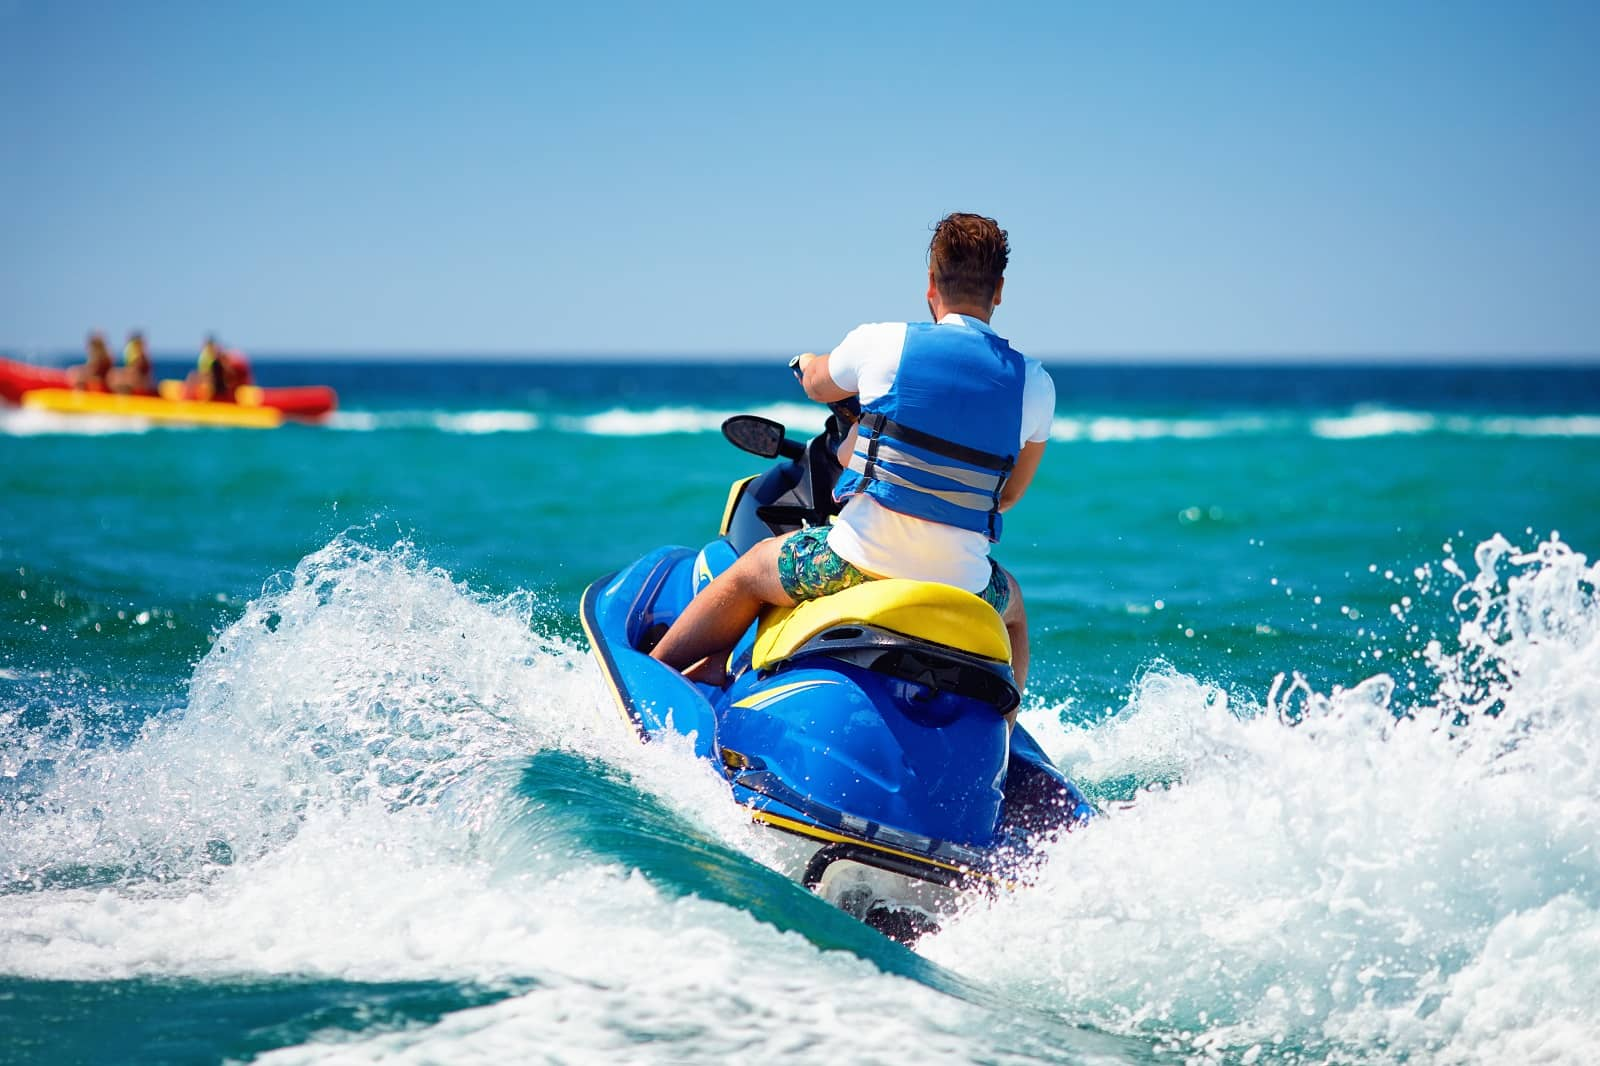 Back view of man riding jet ski